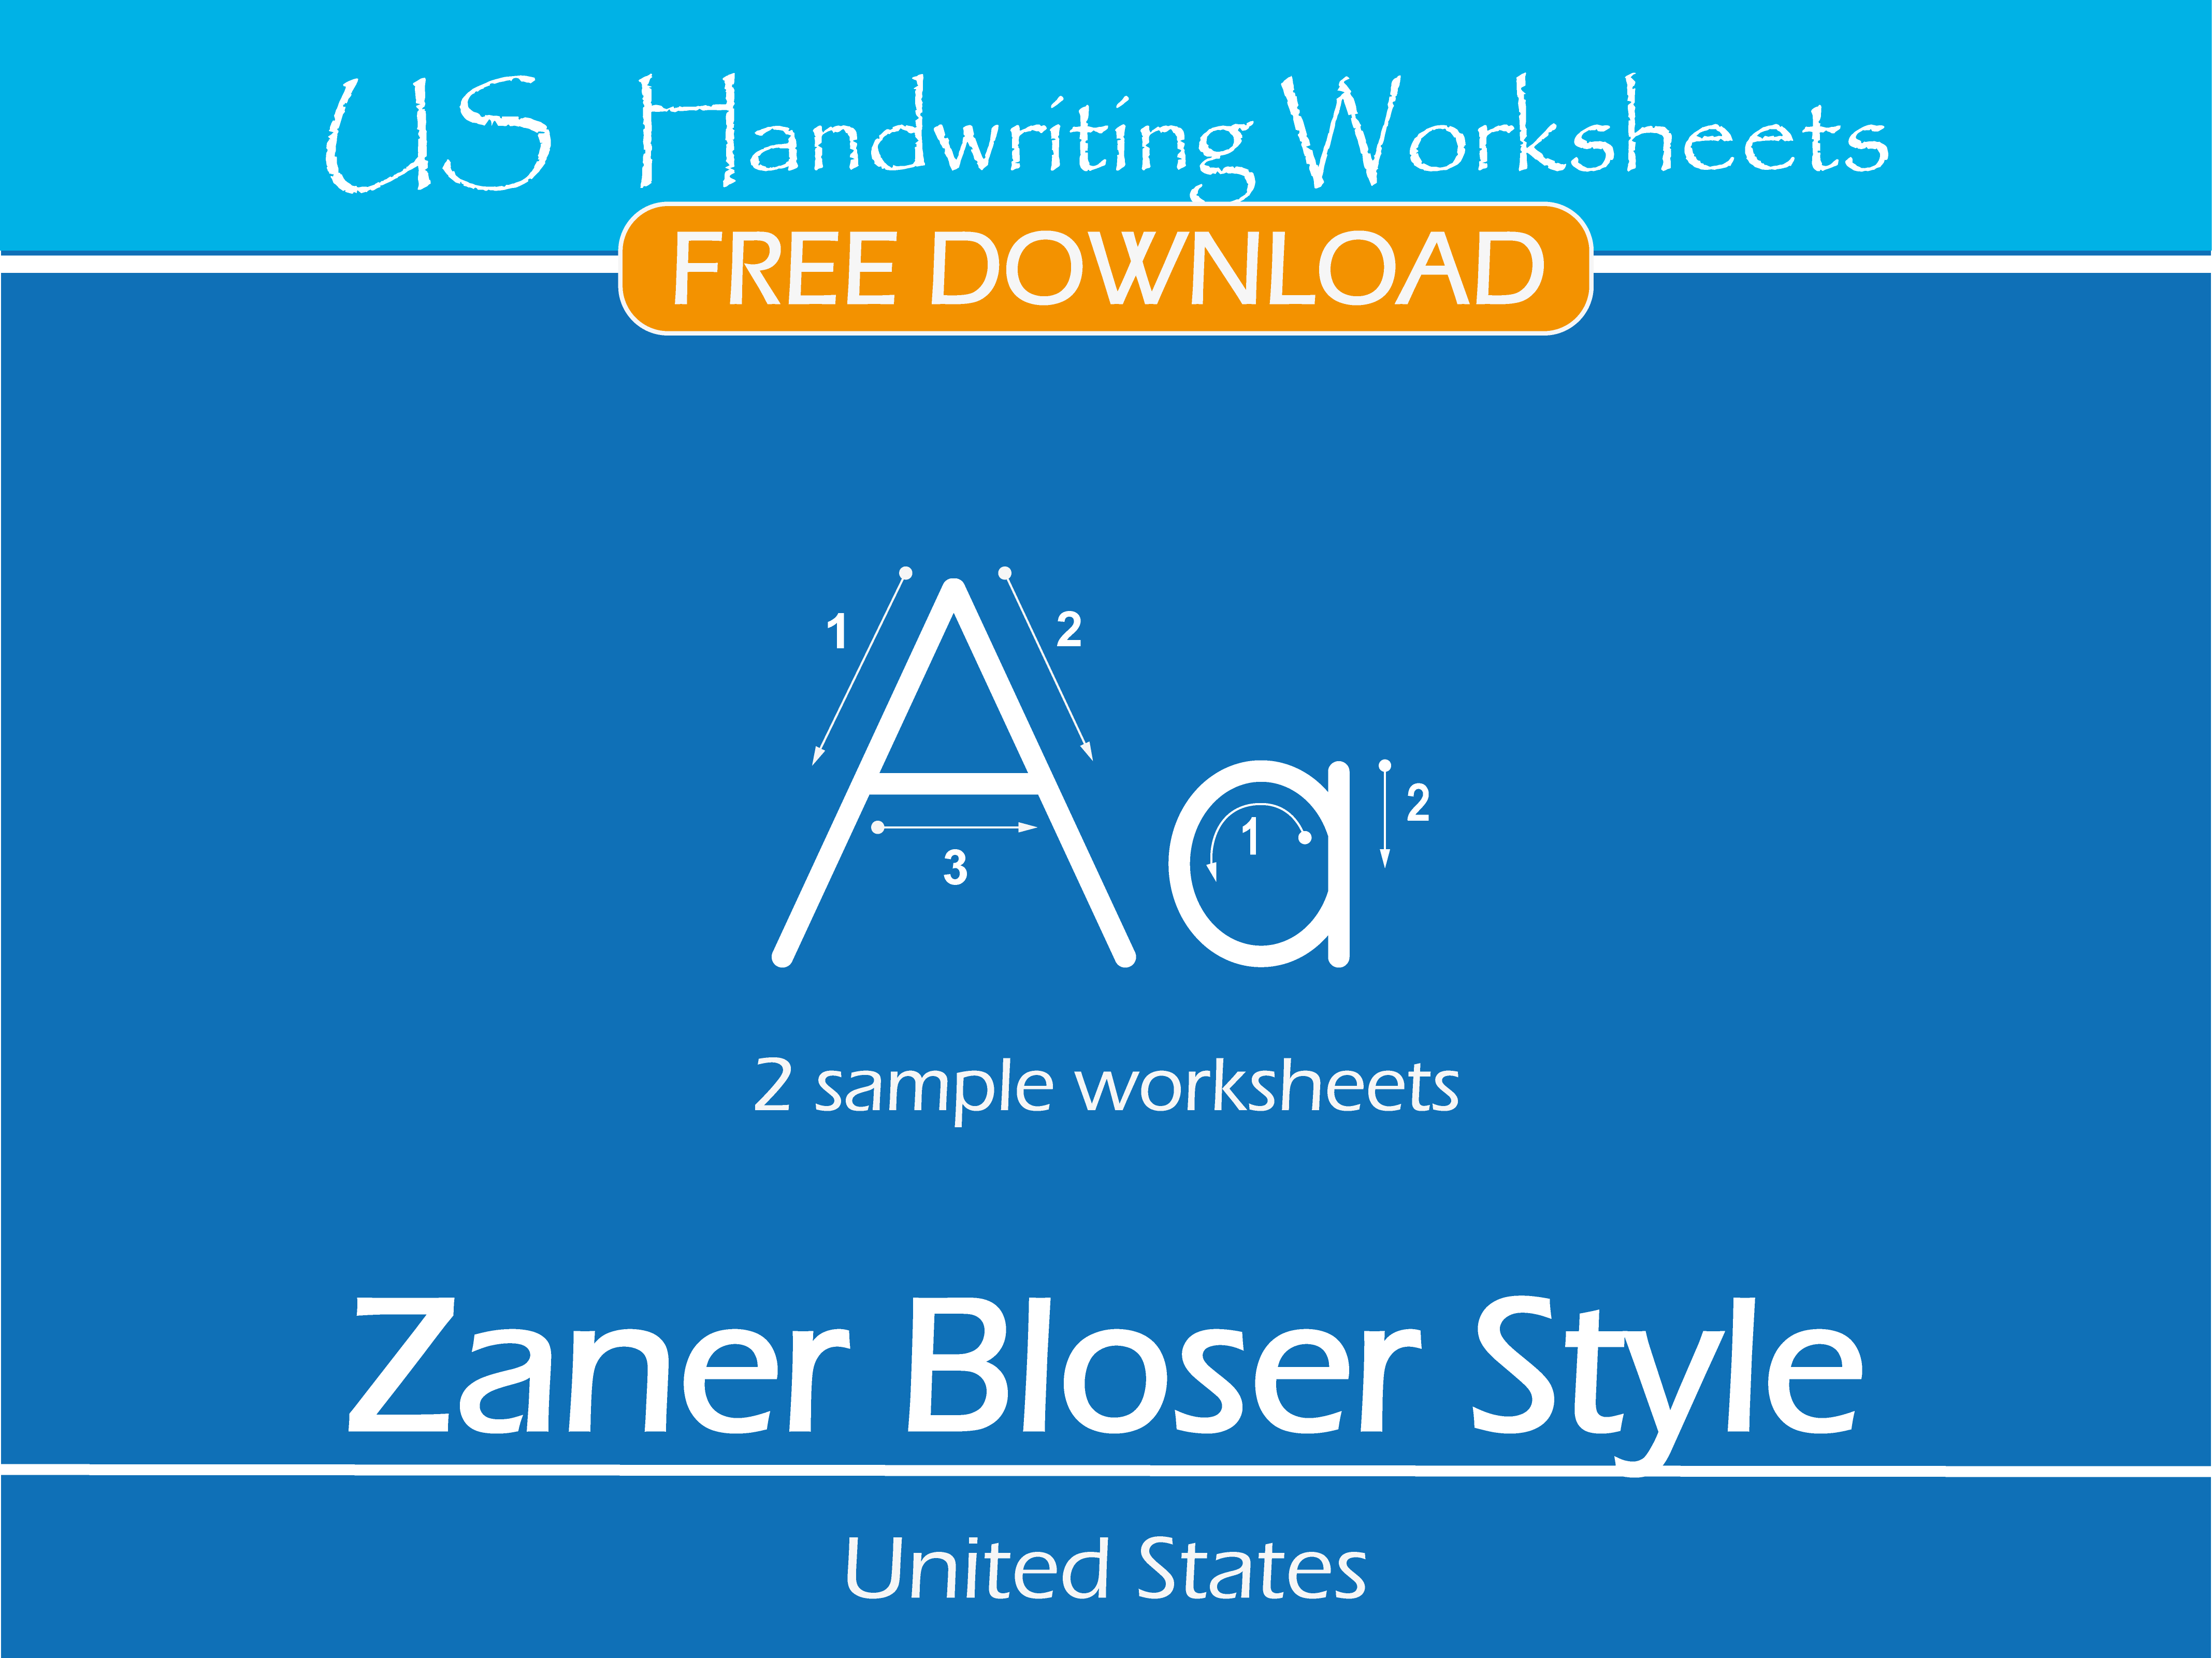 US Handwriting Worksheets Zaner Bloser Style Free Sample – Zaner Bloser Cursive Worksheets